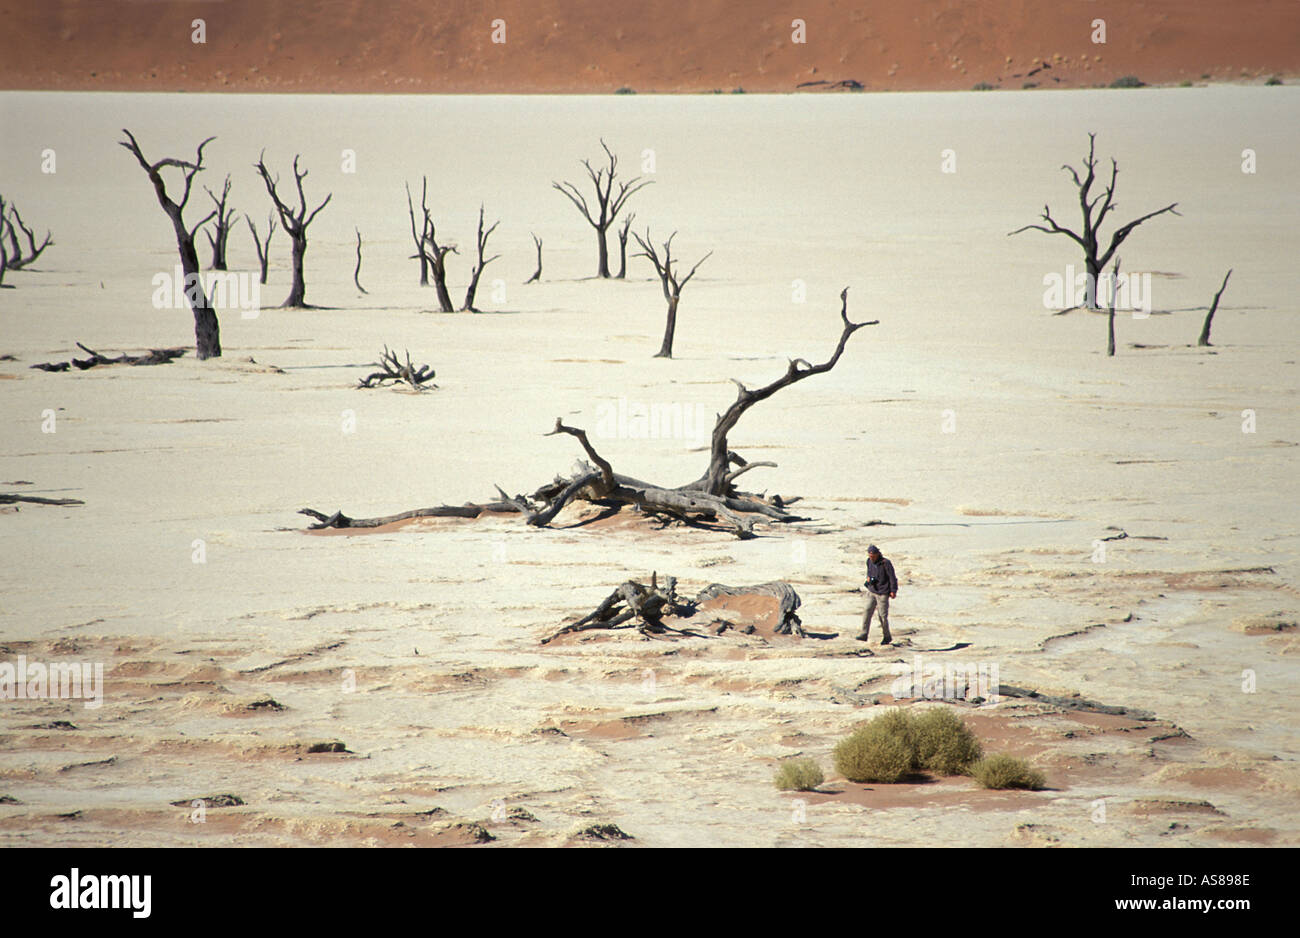 Sand dunes dessicated acacia trees on a salt pan Dead Vlei Namib Naukluft Nat l Park Lone walker gives scale Namibia - Stock Image